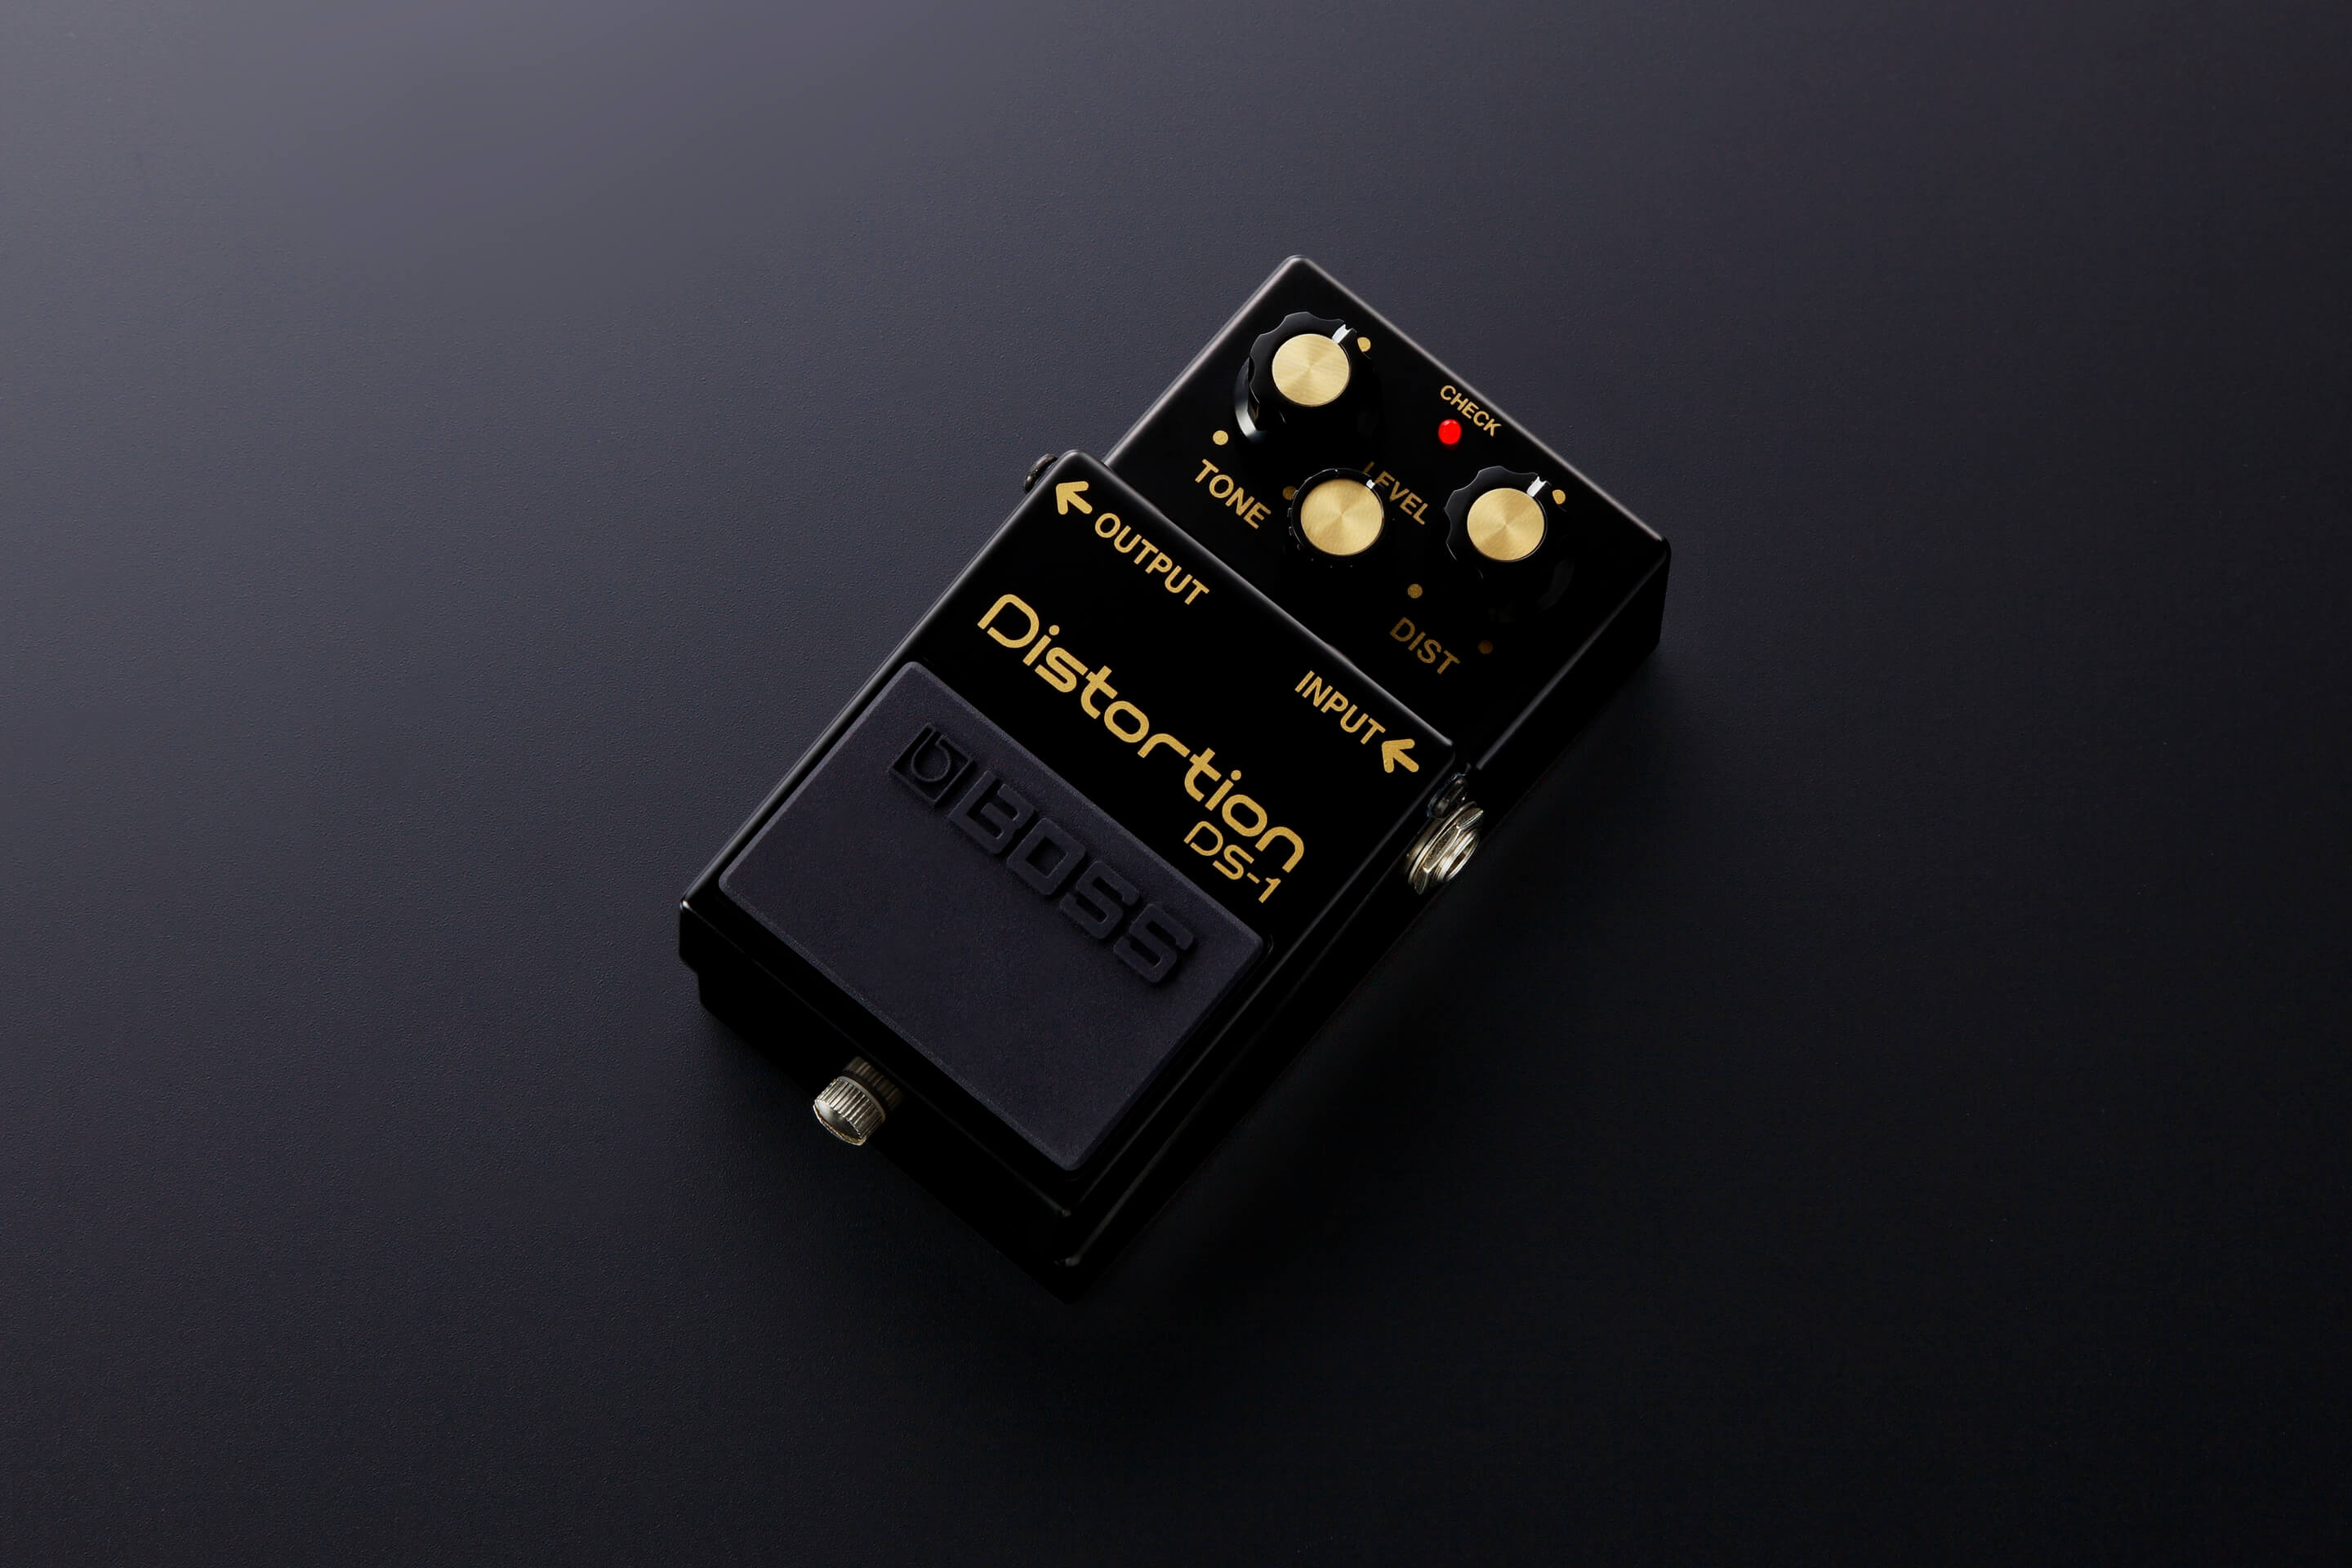 Boss Intros Ds 1 4a Distortion Limited Edition Stompbox